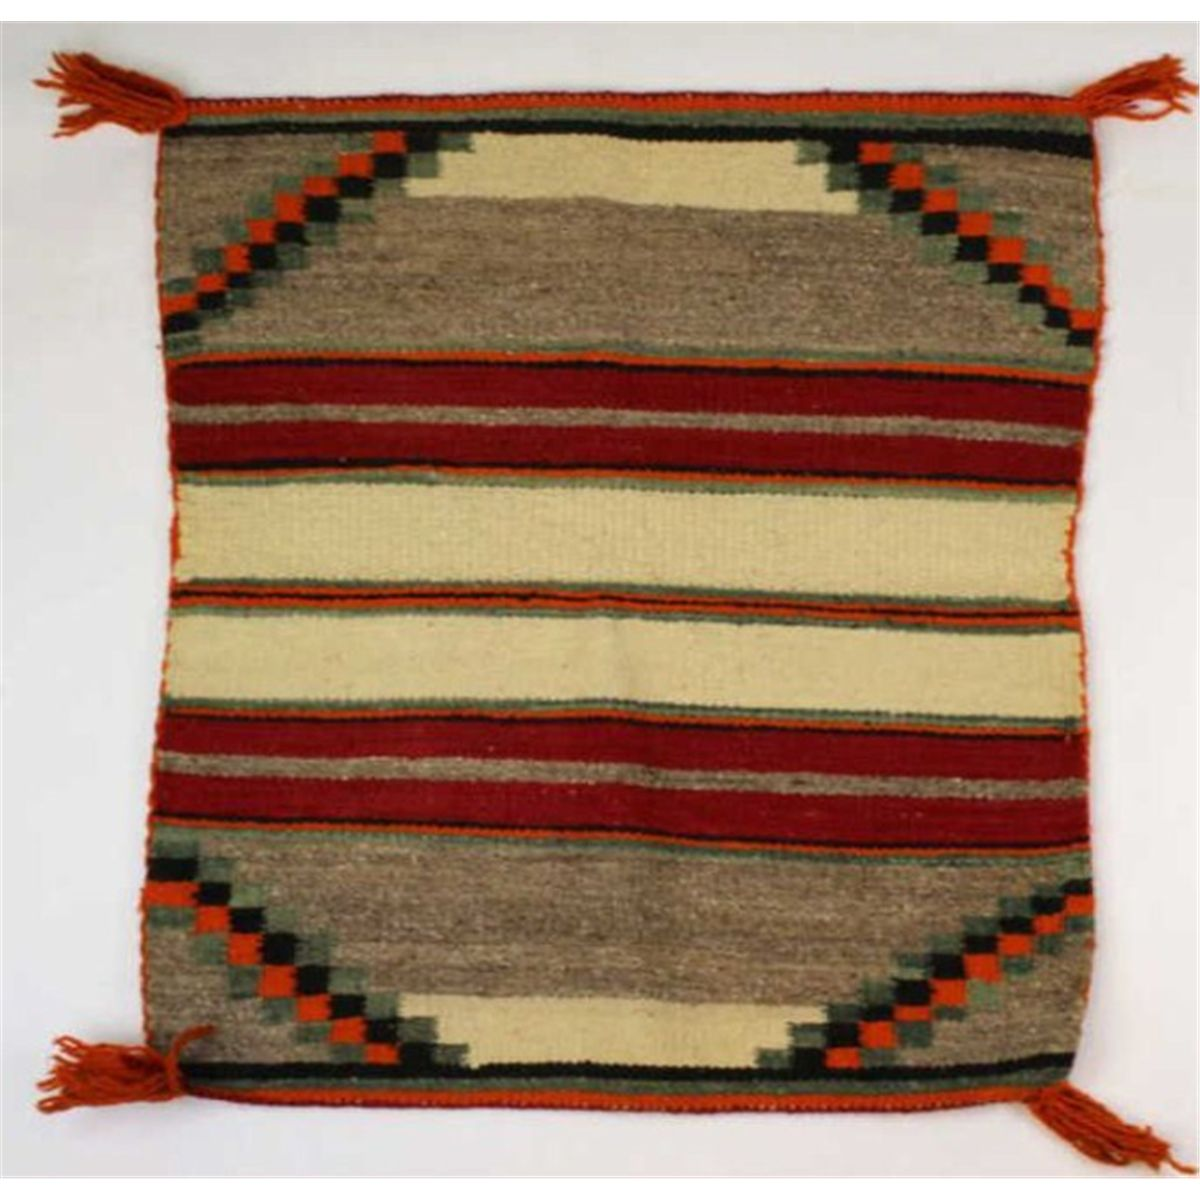 Vintage Navajo Rug With Orange Black Red Brown White And Gray Colors In A Geometrical Pattern Me